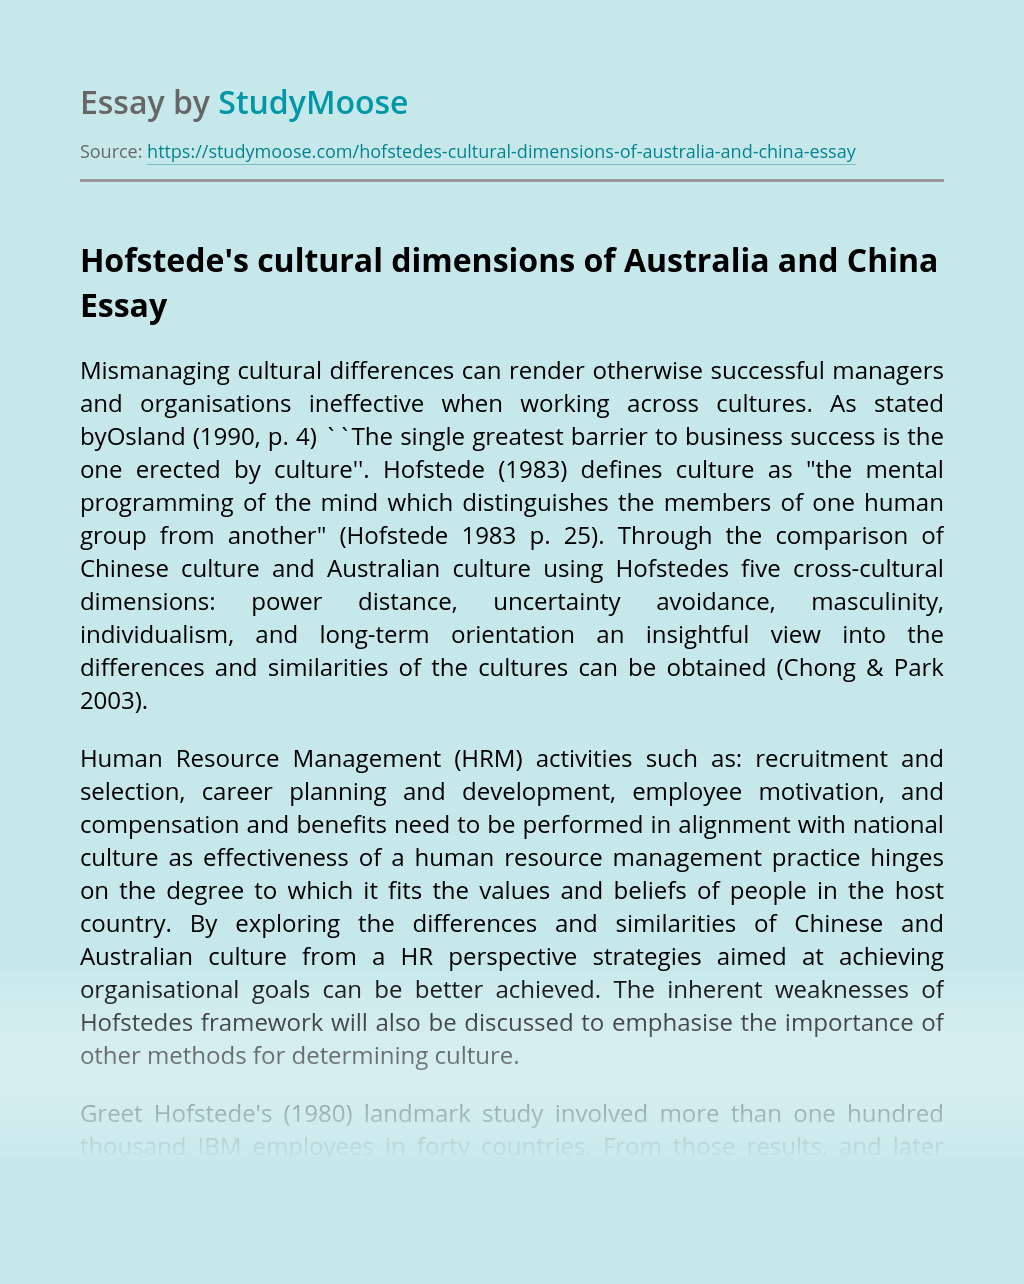 Hofstede's cultural dimensions of Australia and China